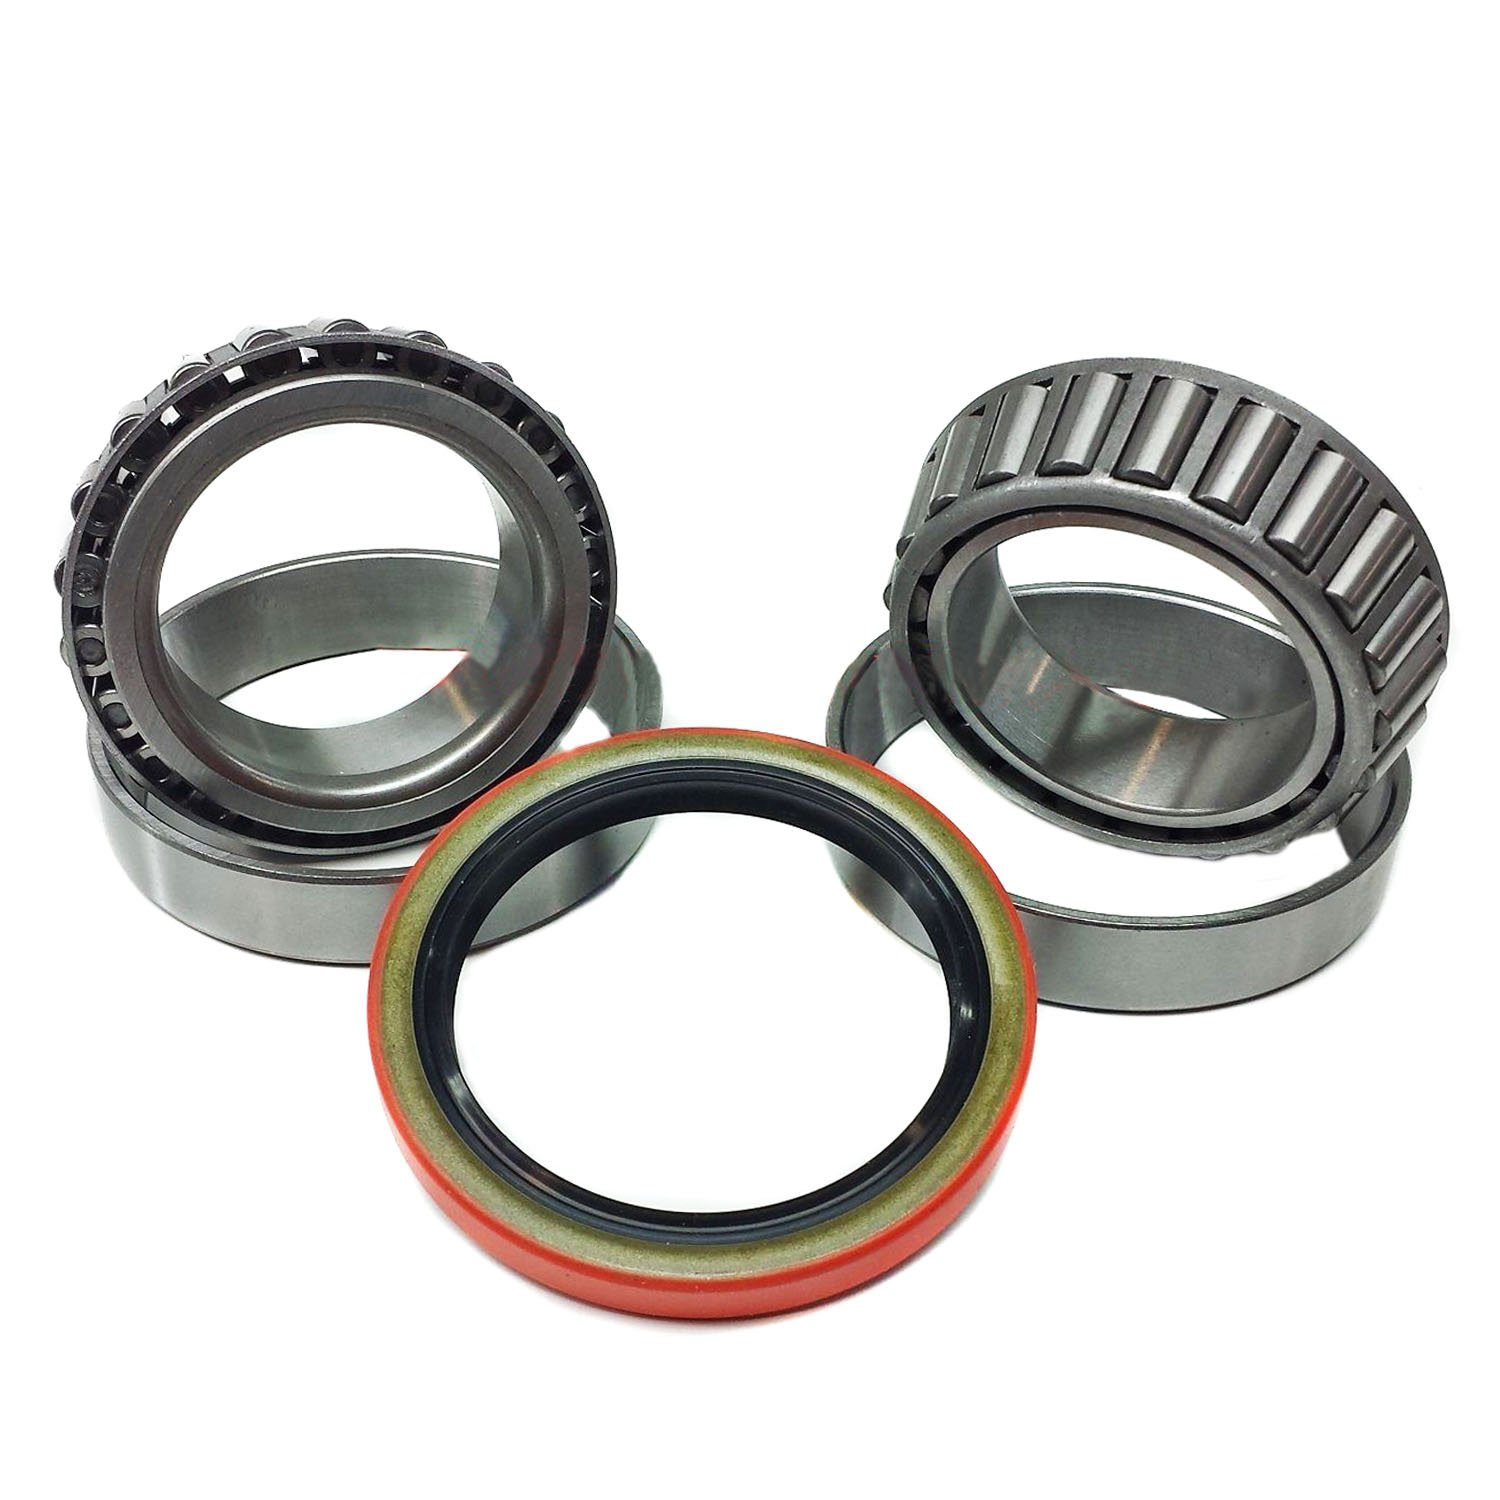 ACDelco CT24KVAL GM Original Equipment Manual Transmission Clutch Release Bearing